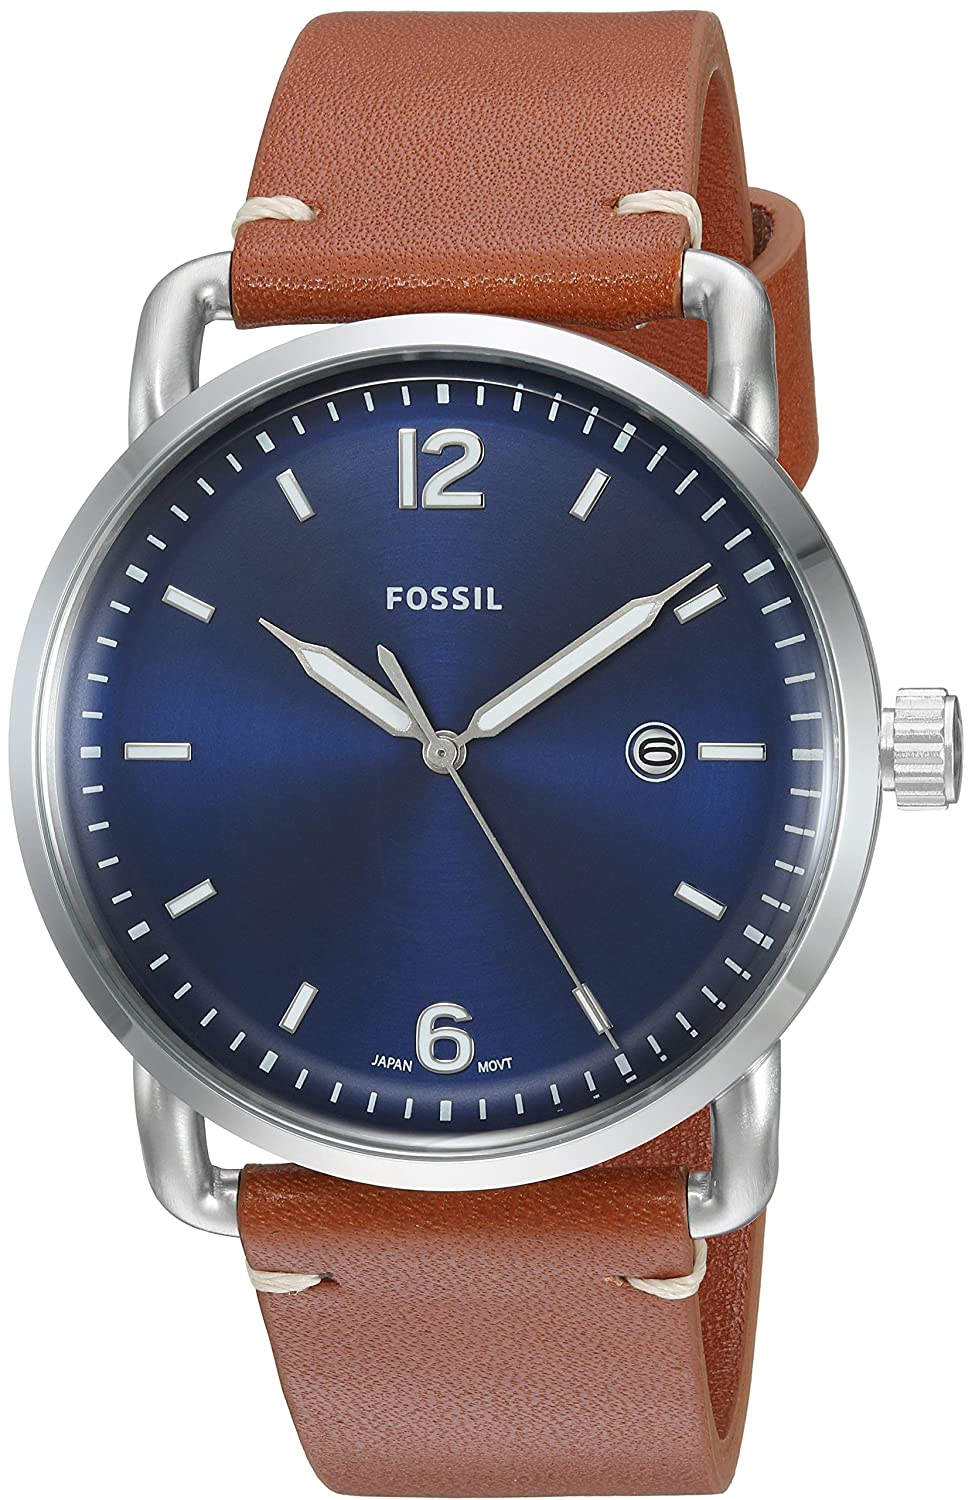 7fbf53f3f01 Amazon.com  Fossil Men s The Commuter Quartz Stainless Steel and Leather  Casual Watch